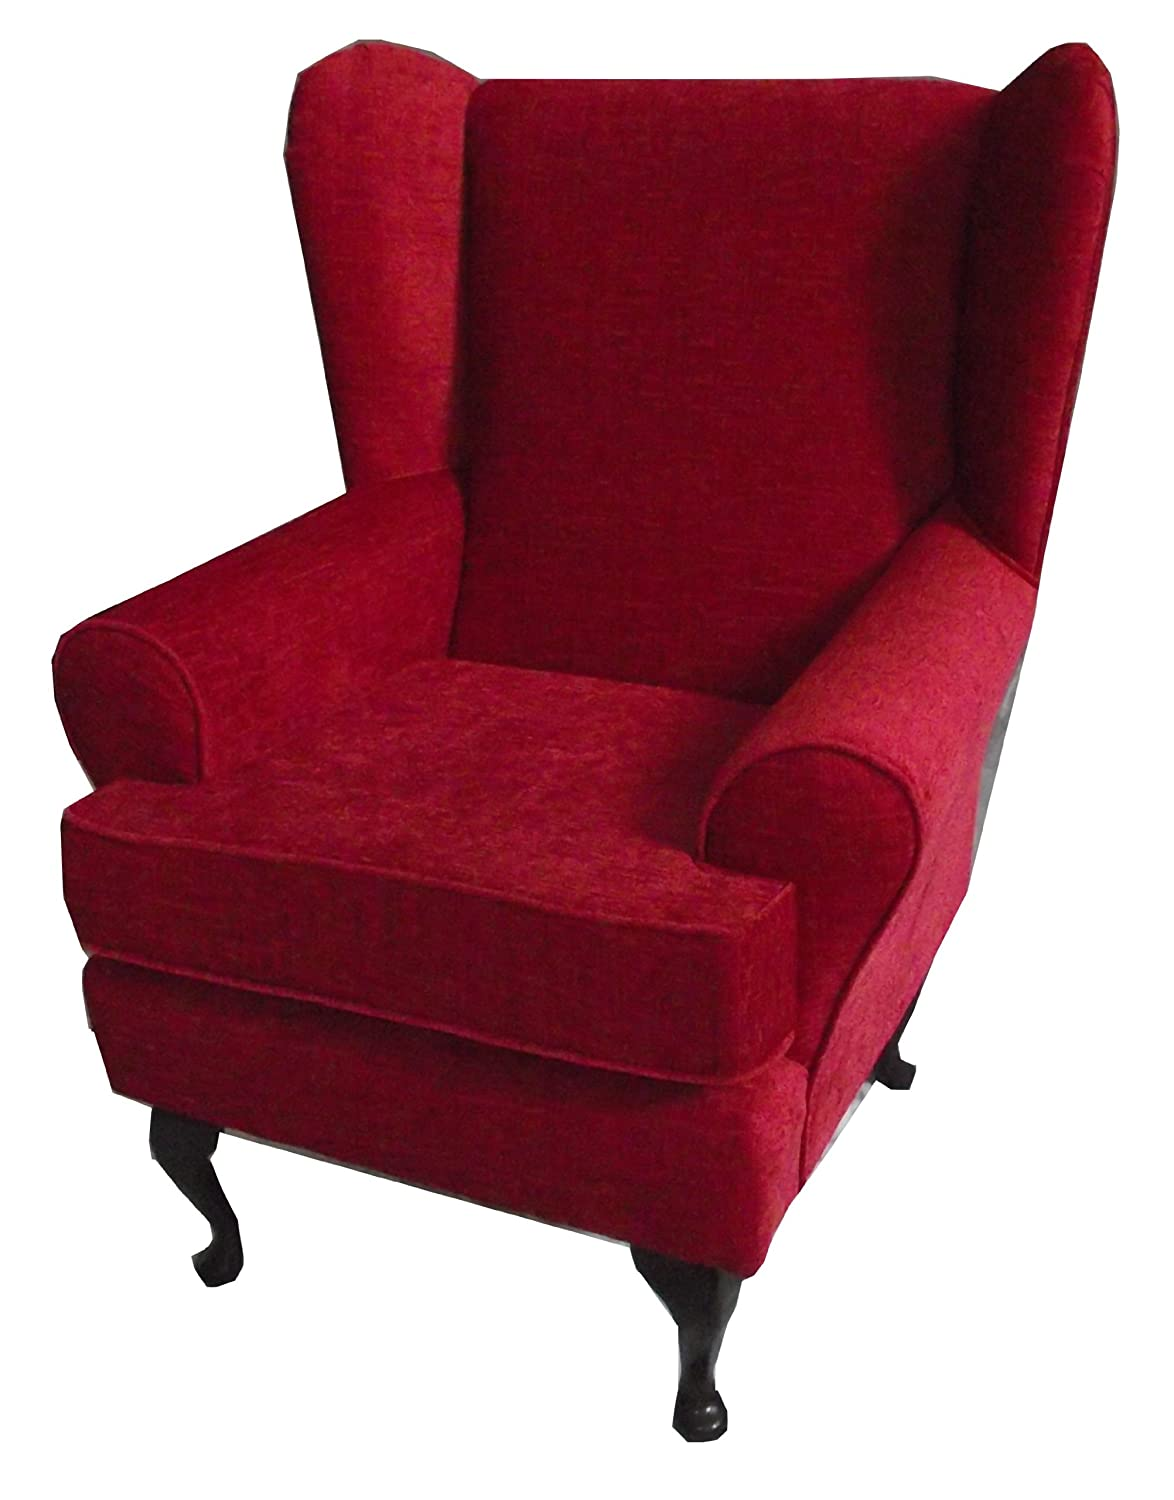 red chenille queen anne design wing back fireside high back chair